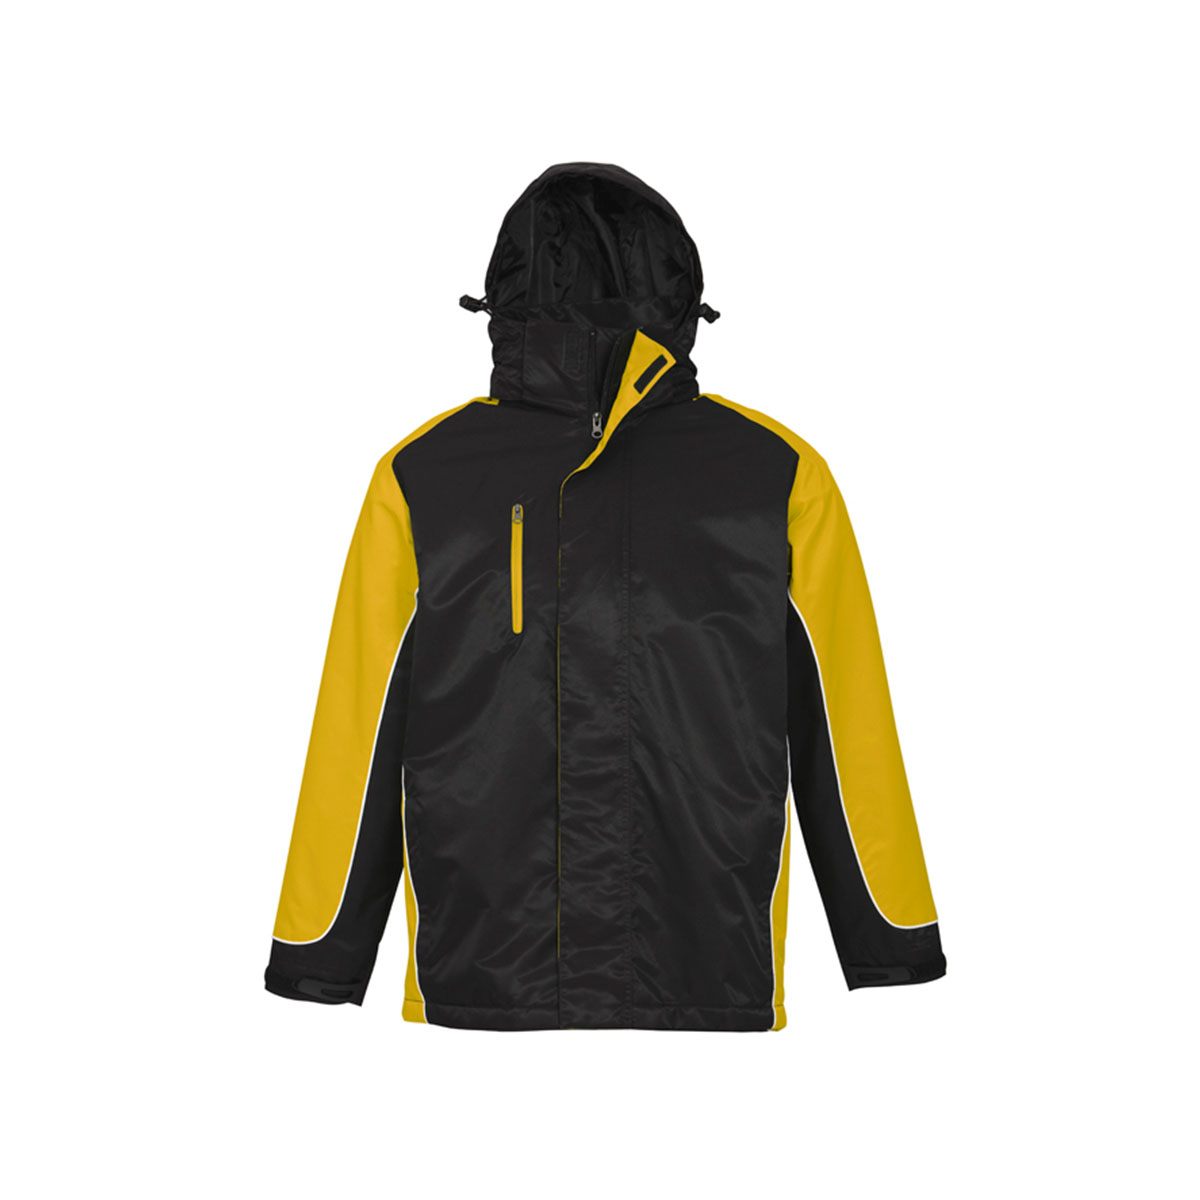 Unisex Nitro Jacket-Black / Yellow / White